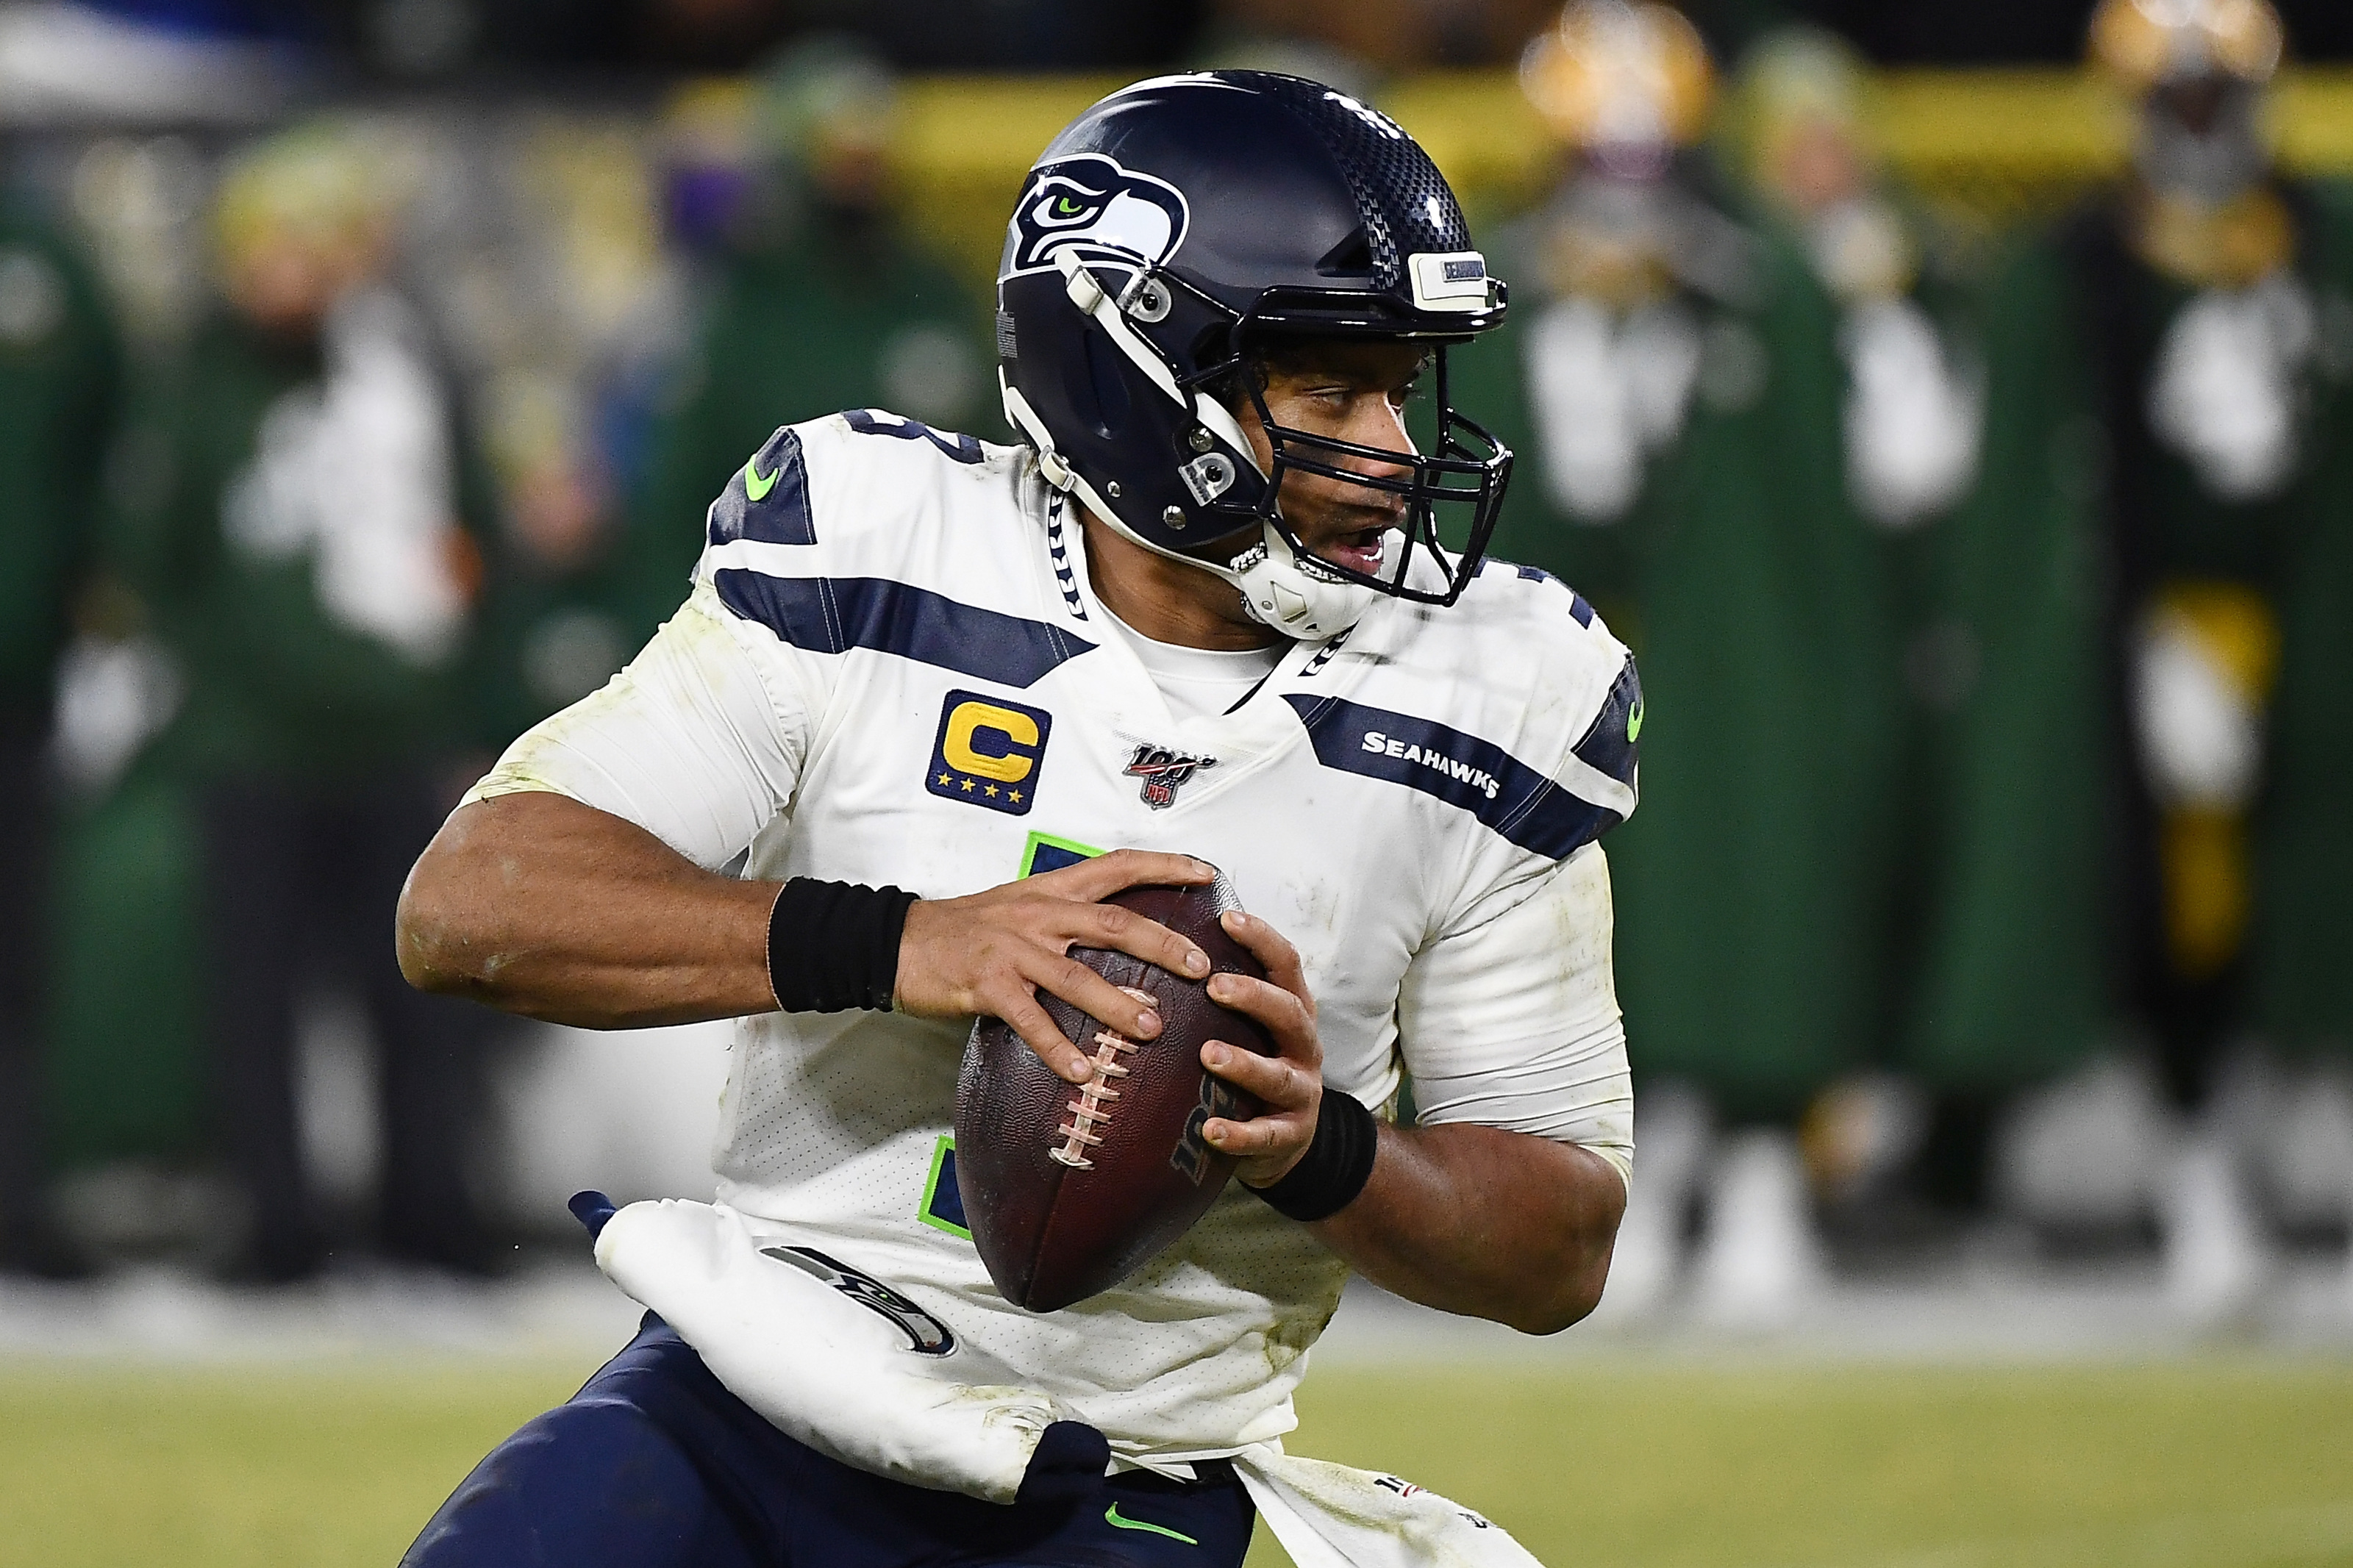 Seahawks: 3 quarterbacks who could backup Russell Wilson in 2020